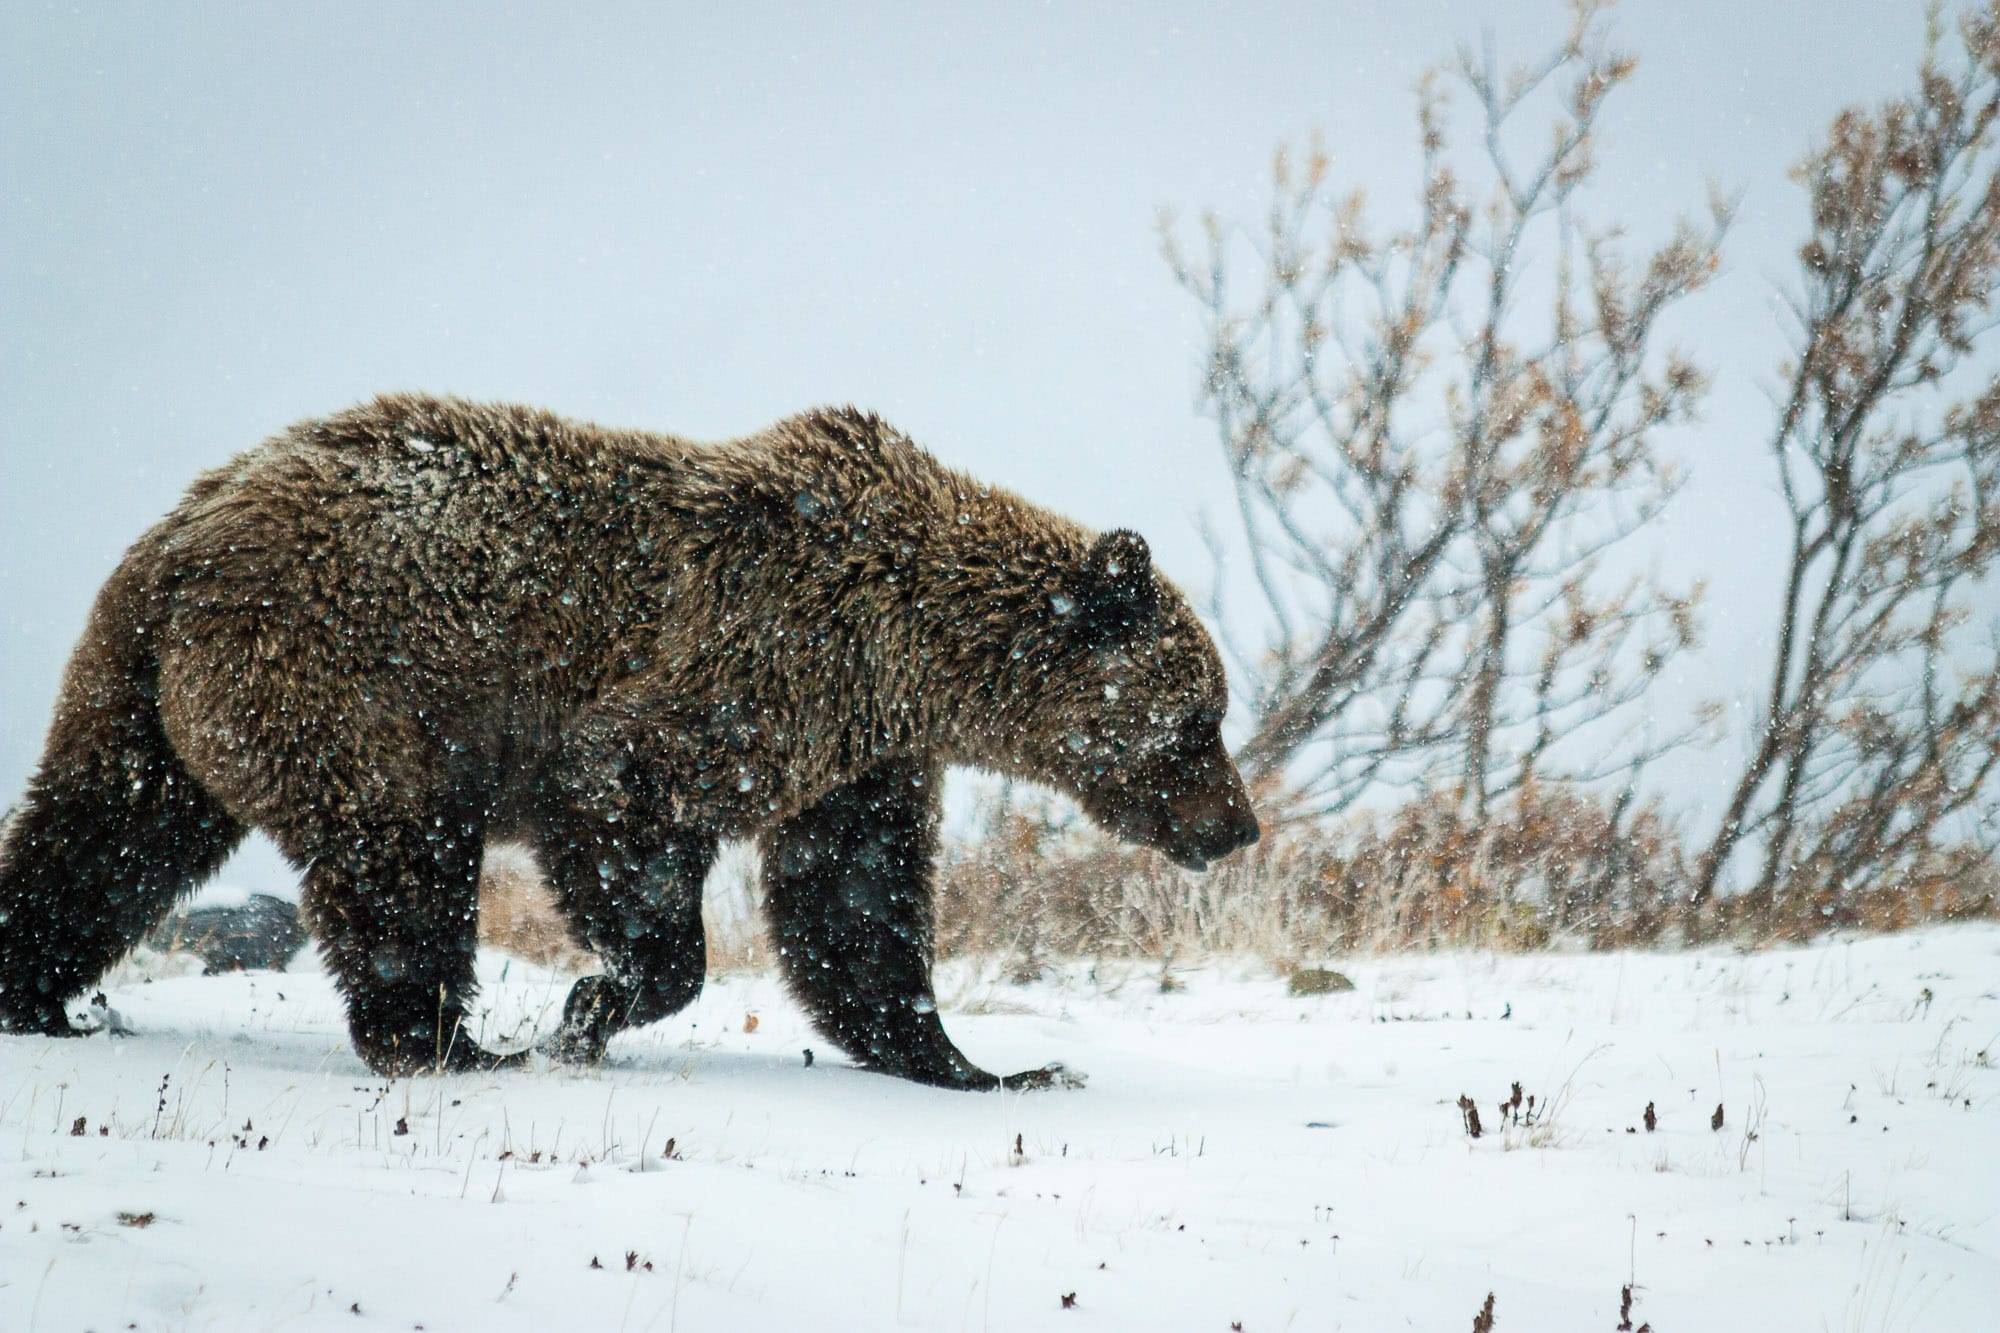 Grizzly bear in Denali National Park and Preserve